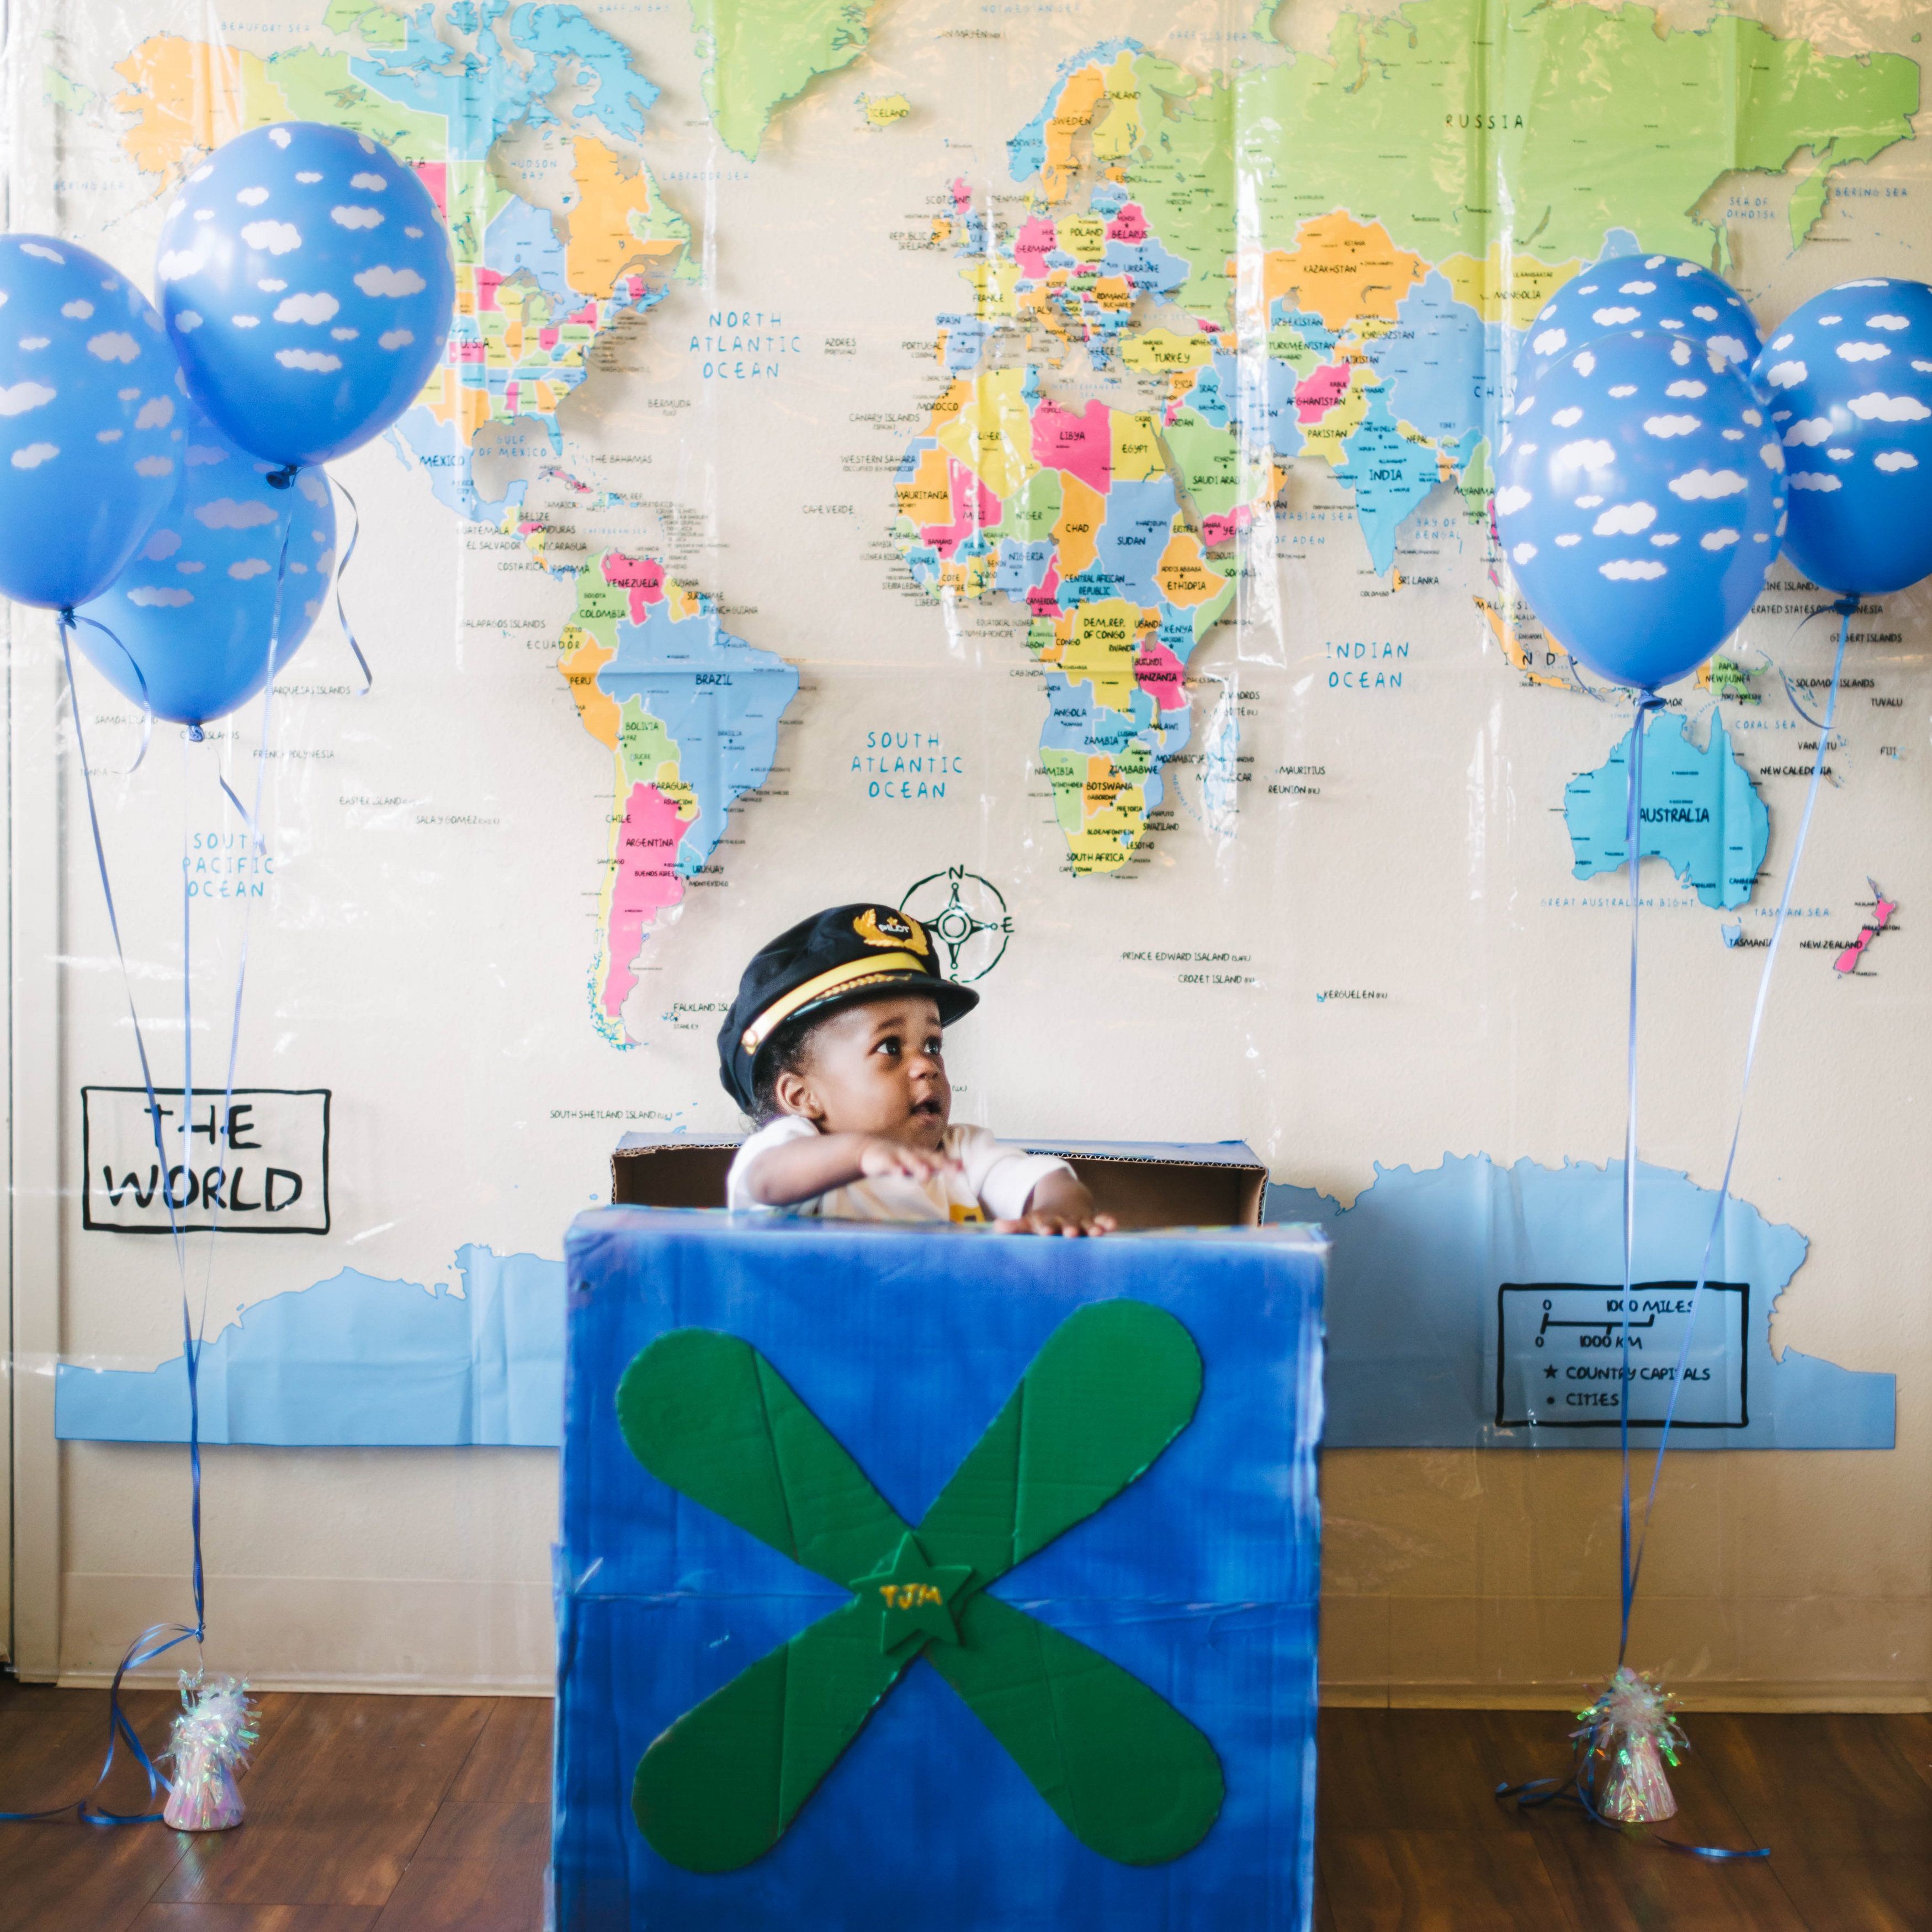 Photobooth from travel themed first birthday party backdrop shower photobooth from travel themed first birthday party backdrop shower curtain of world map from gumiabroncs Choice Image